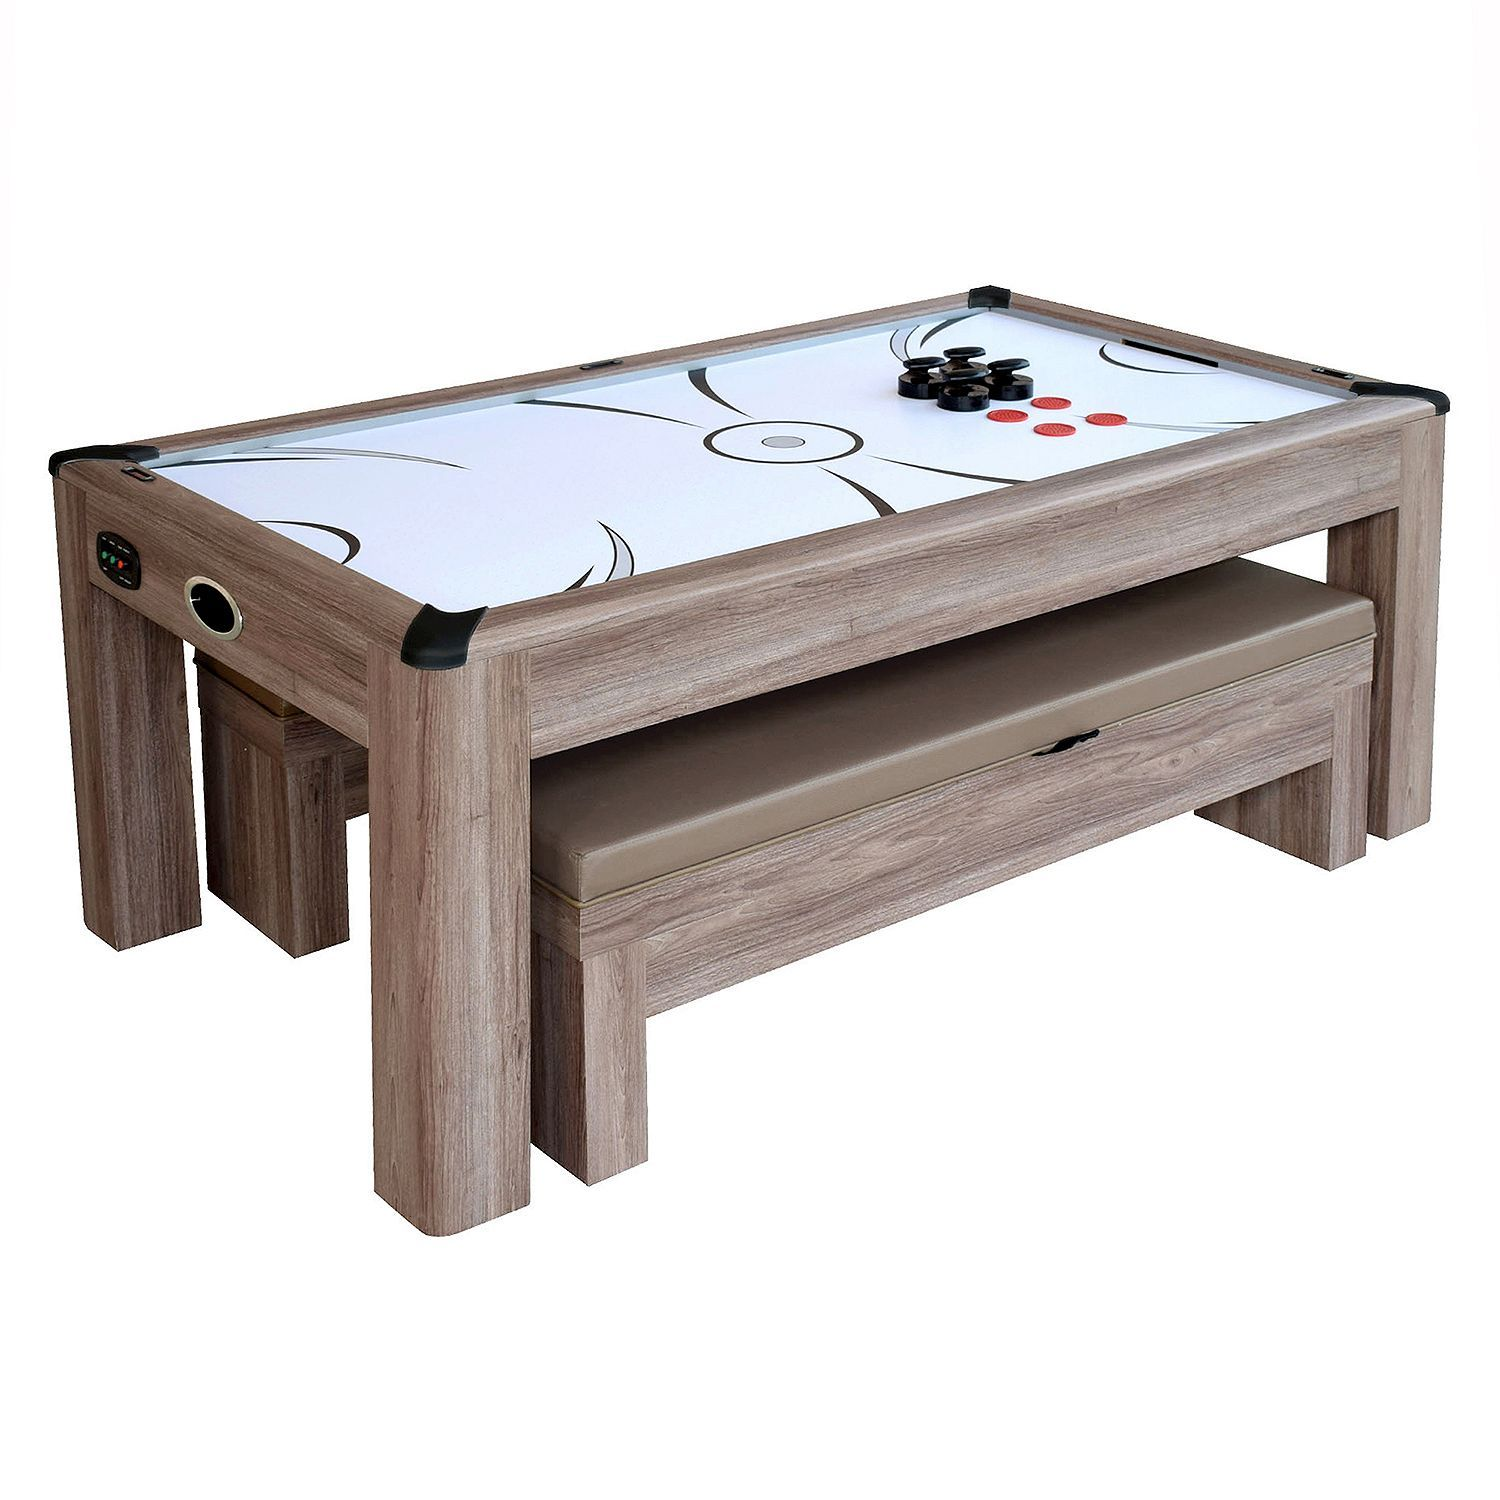 Driftwood 7 Ft Air Hockey Table Combo Set With Benches Pool Warehouse Air Hockey Table Multi Game Table Bench Seat Pads